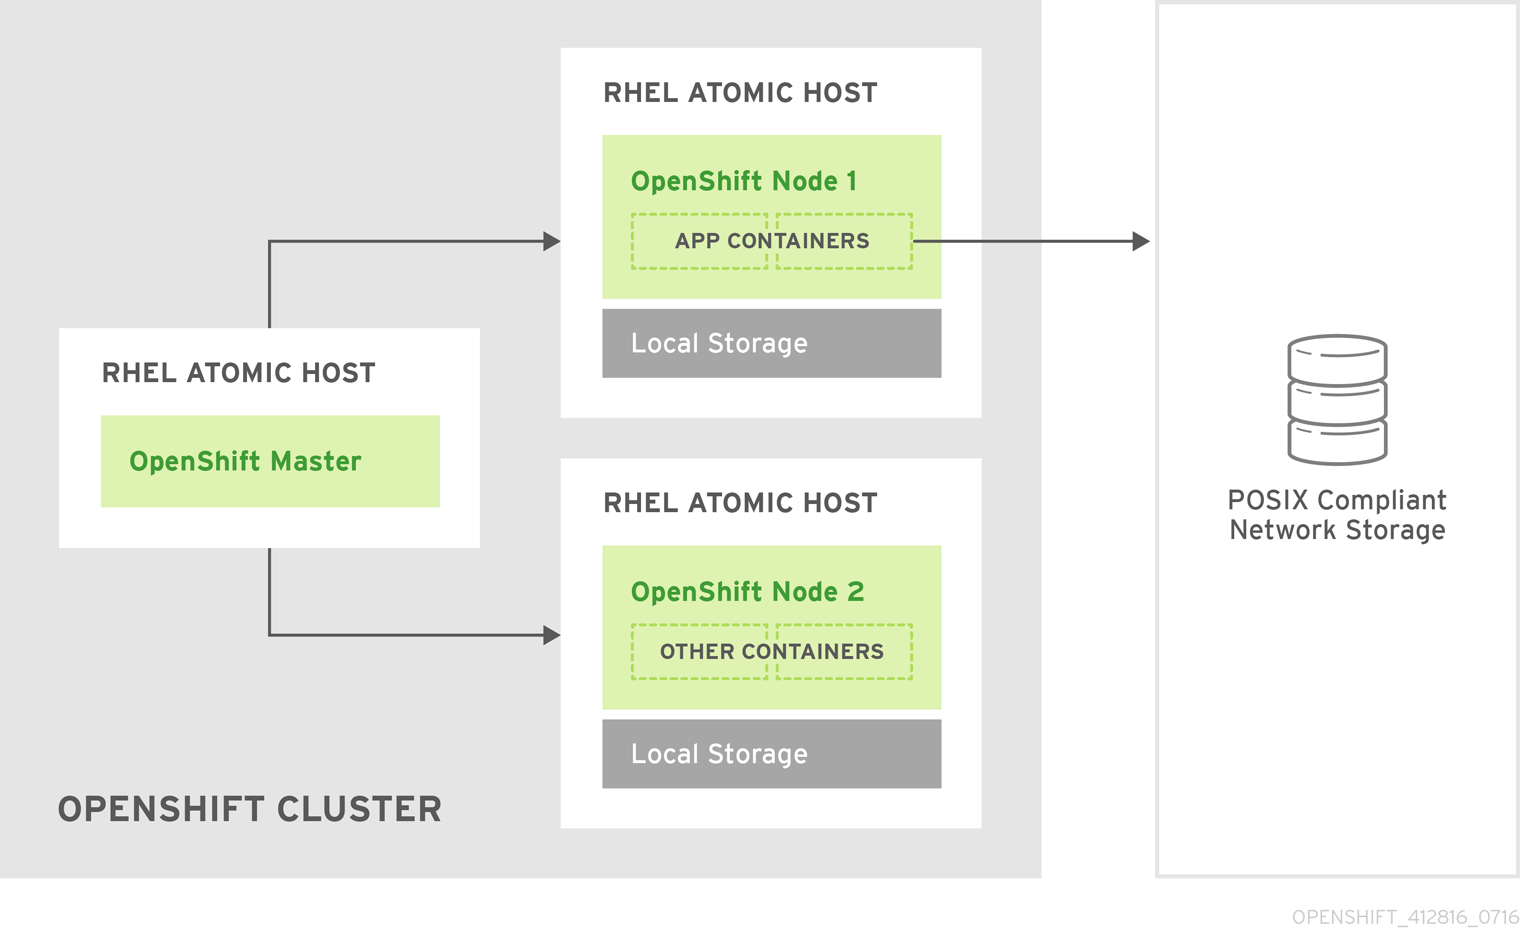 Installation and configuration red hat customer portal for Openshift 3 architecture